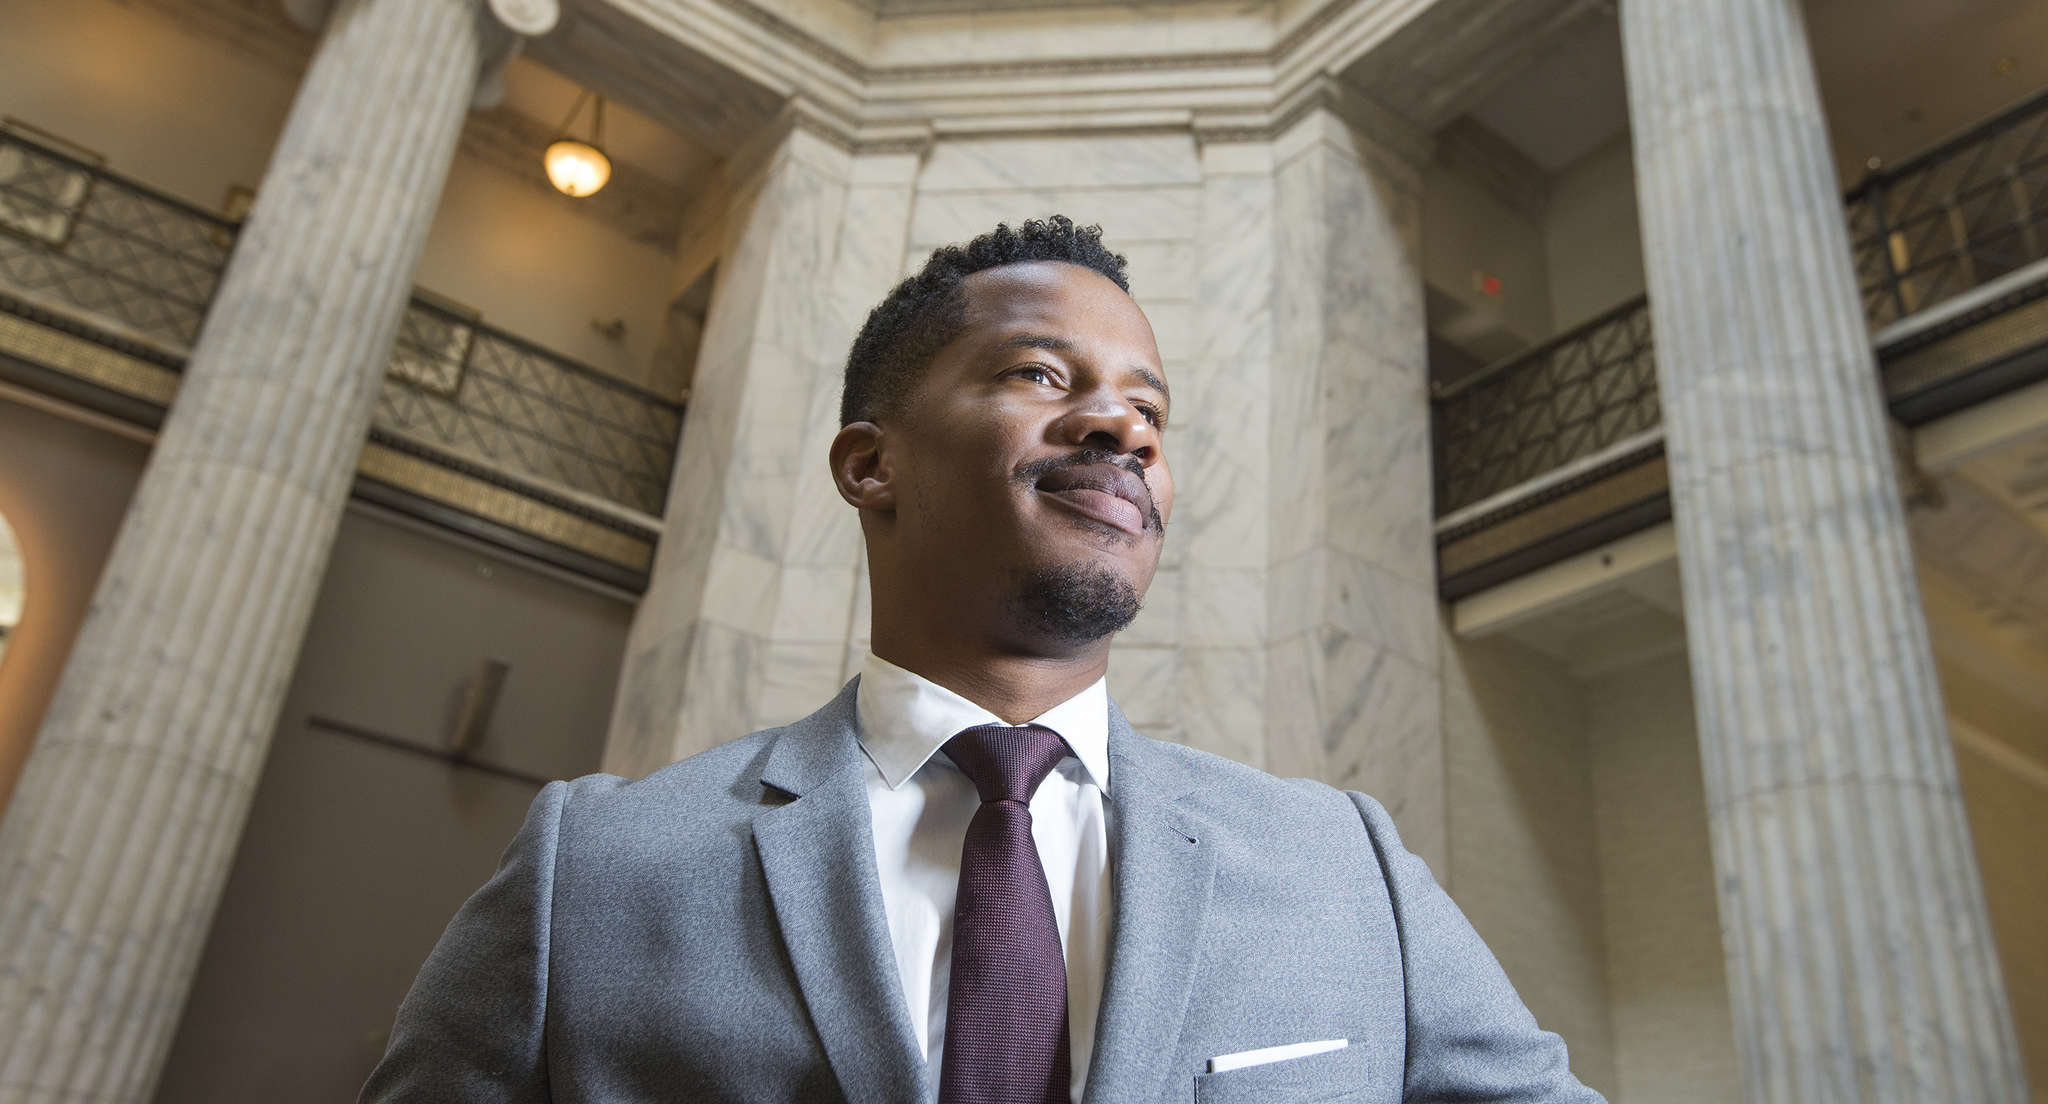 Nate Parker co-wrote, directed and stars in The Birth of a Nation, which is getting Oscar buzz and set to open Oct. 7.